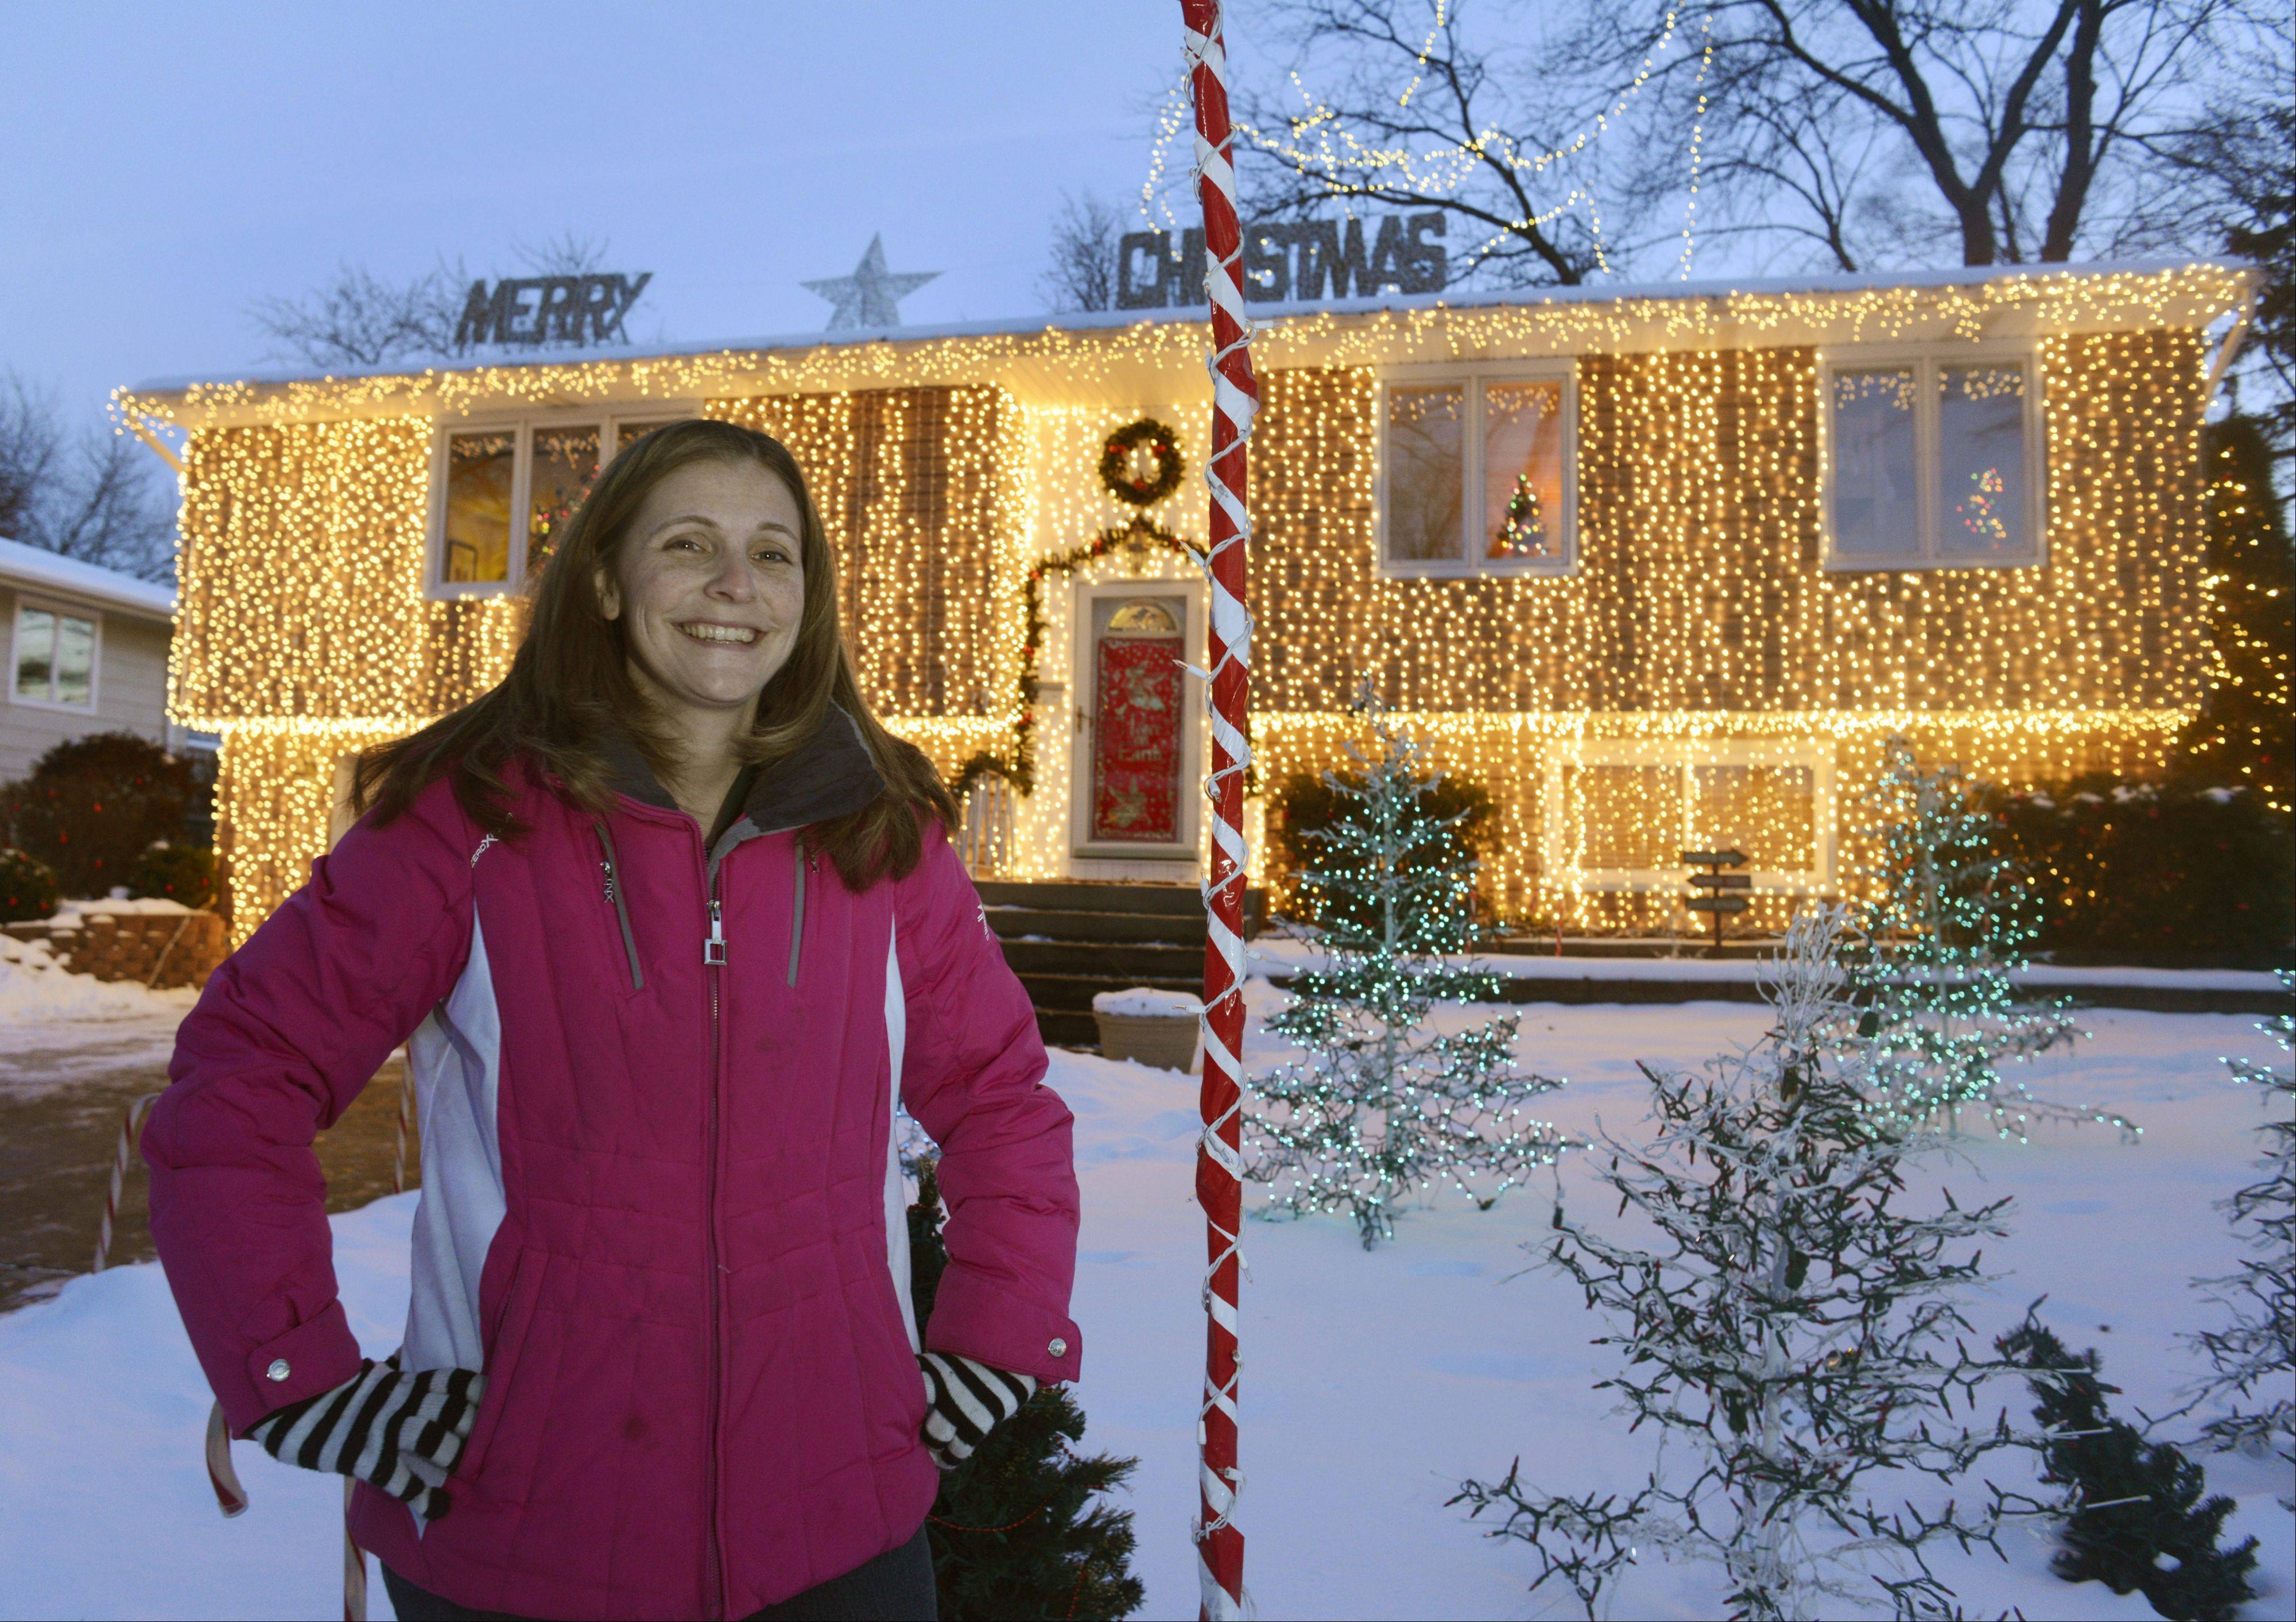 Heather Schluckbier of 503 Dartmouth Lane in Schaumburg is the winner of the Daily Herald Holiday Lights contest. She said winning a contest like this takes a lot of love for the holidays and a little bit of craziness.